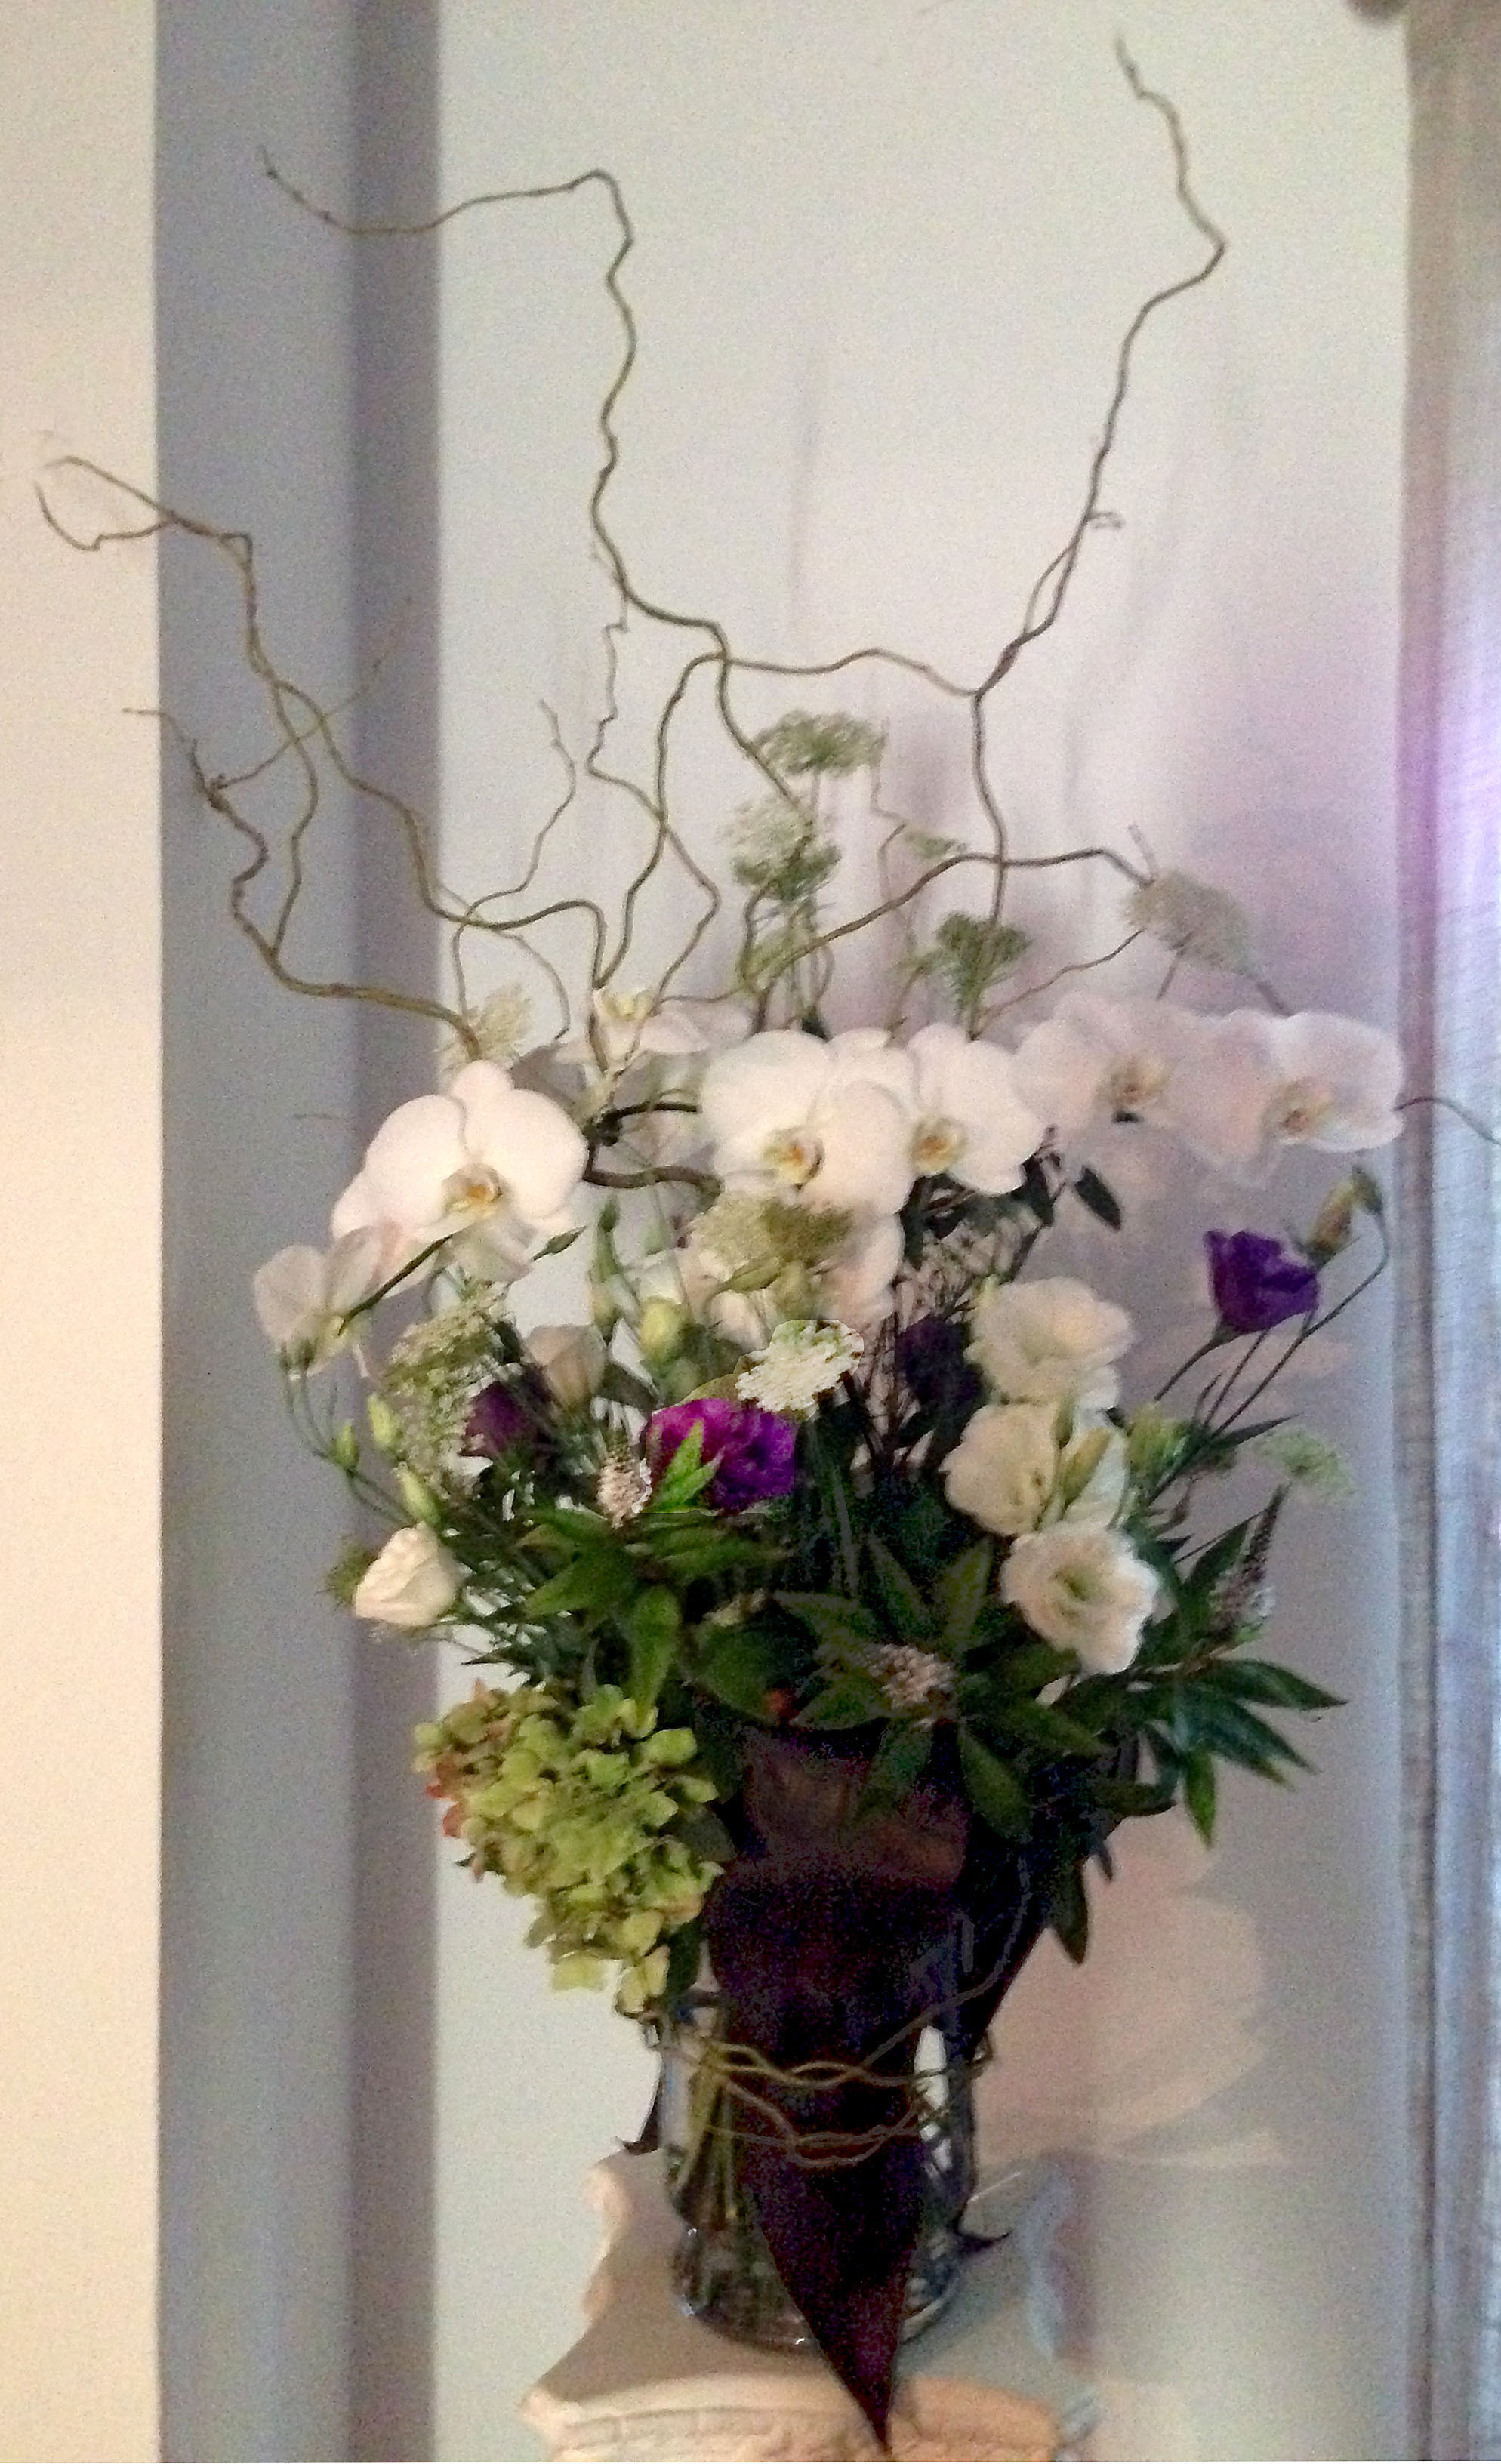 Sympathy flower arrangements by yukiko memorial bouquet with phalaenopsis lisianthus and queen annes lace wrapped with ti leaves and curly willow 350 funeral wreaths izmirmasajfo Image collections